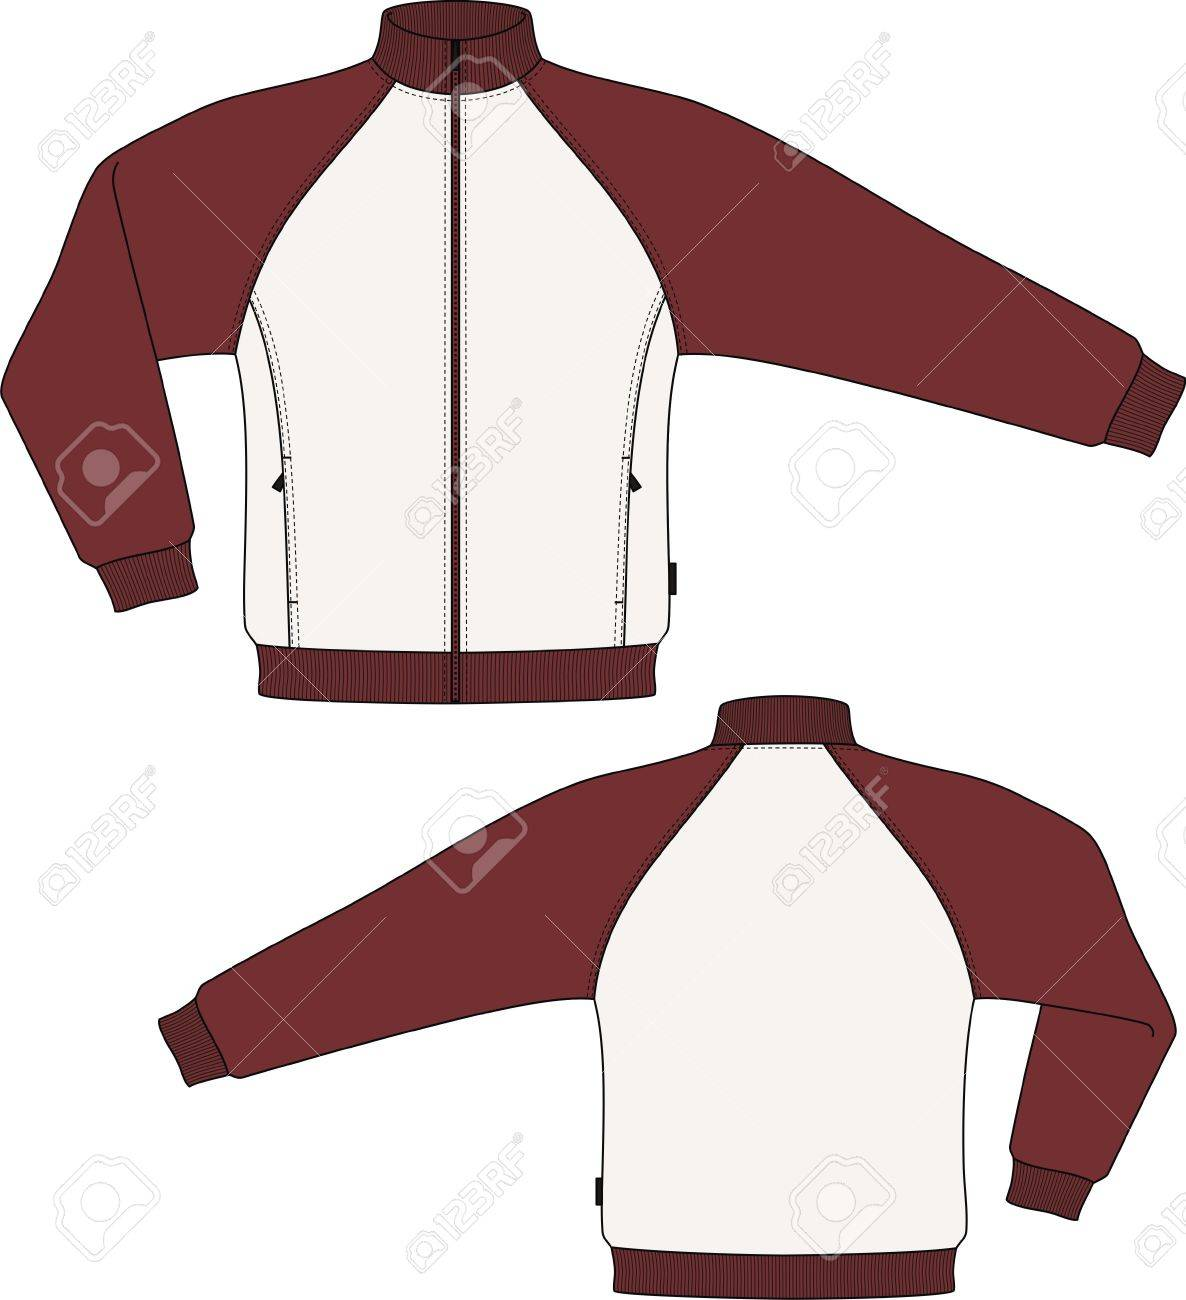 Jacket knitted with a long sleeve and pockets Stock Vector - 8931836